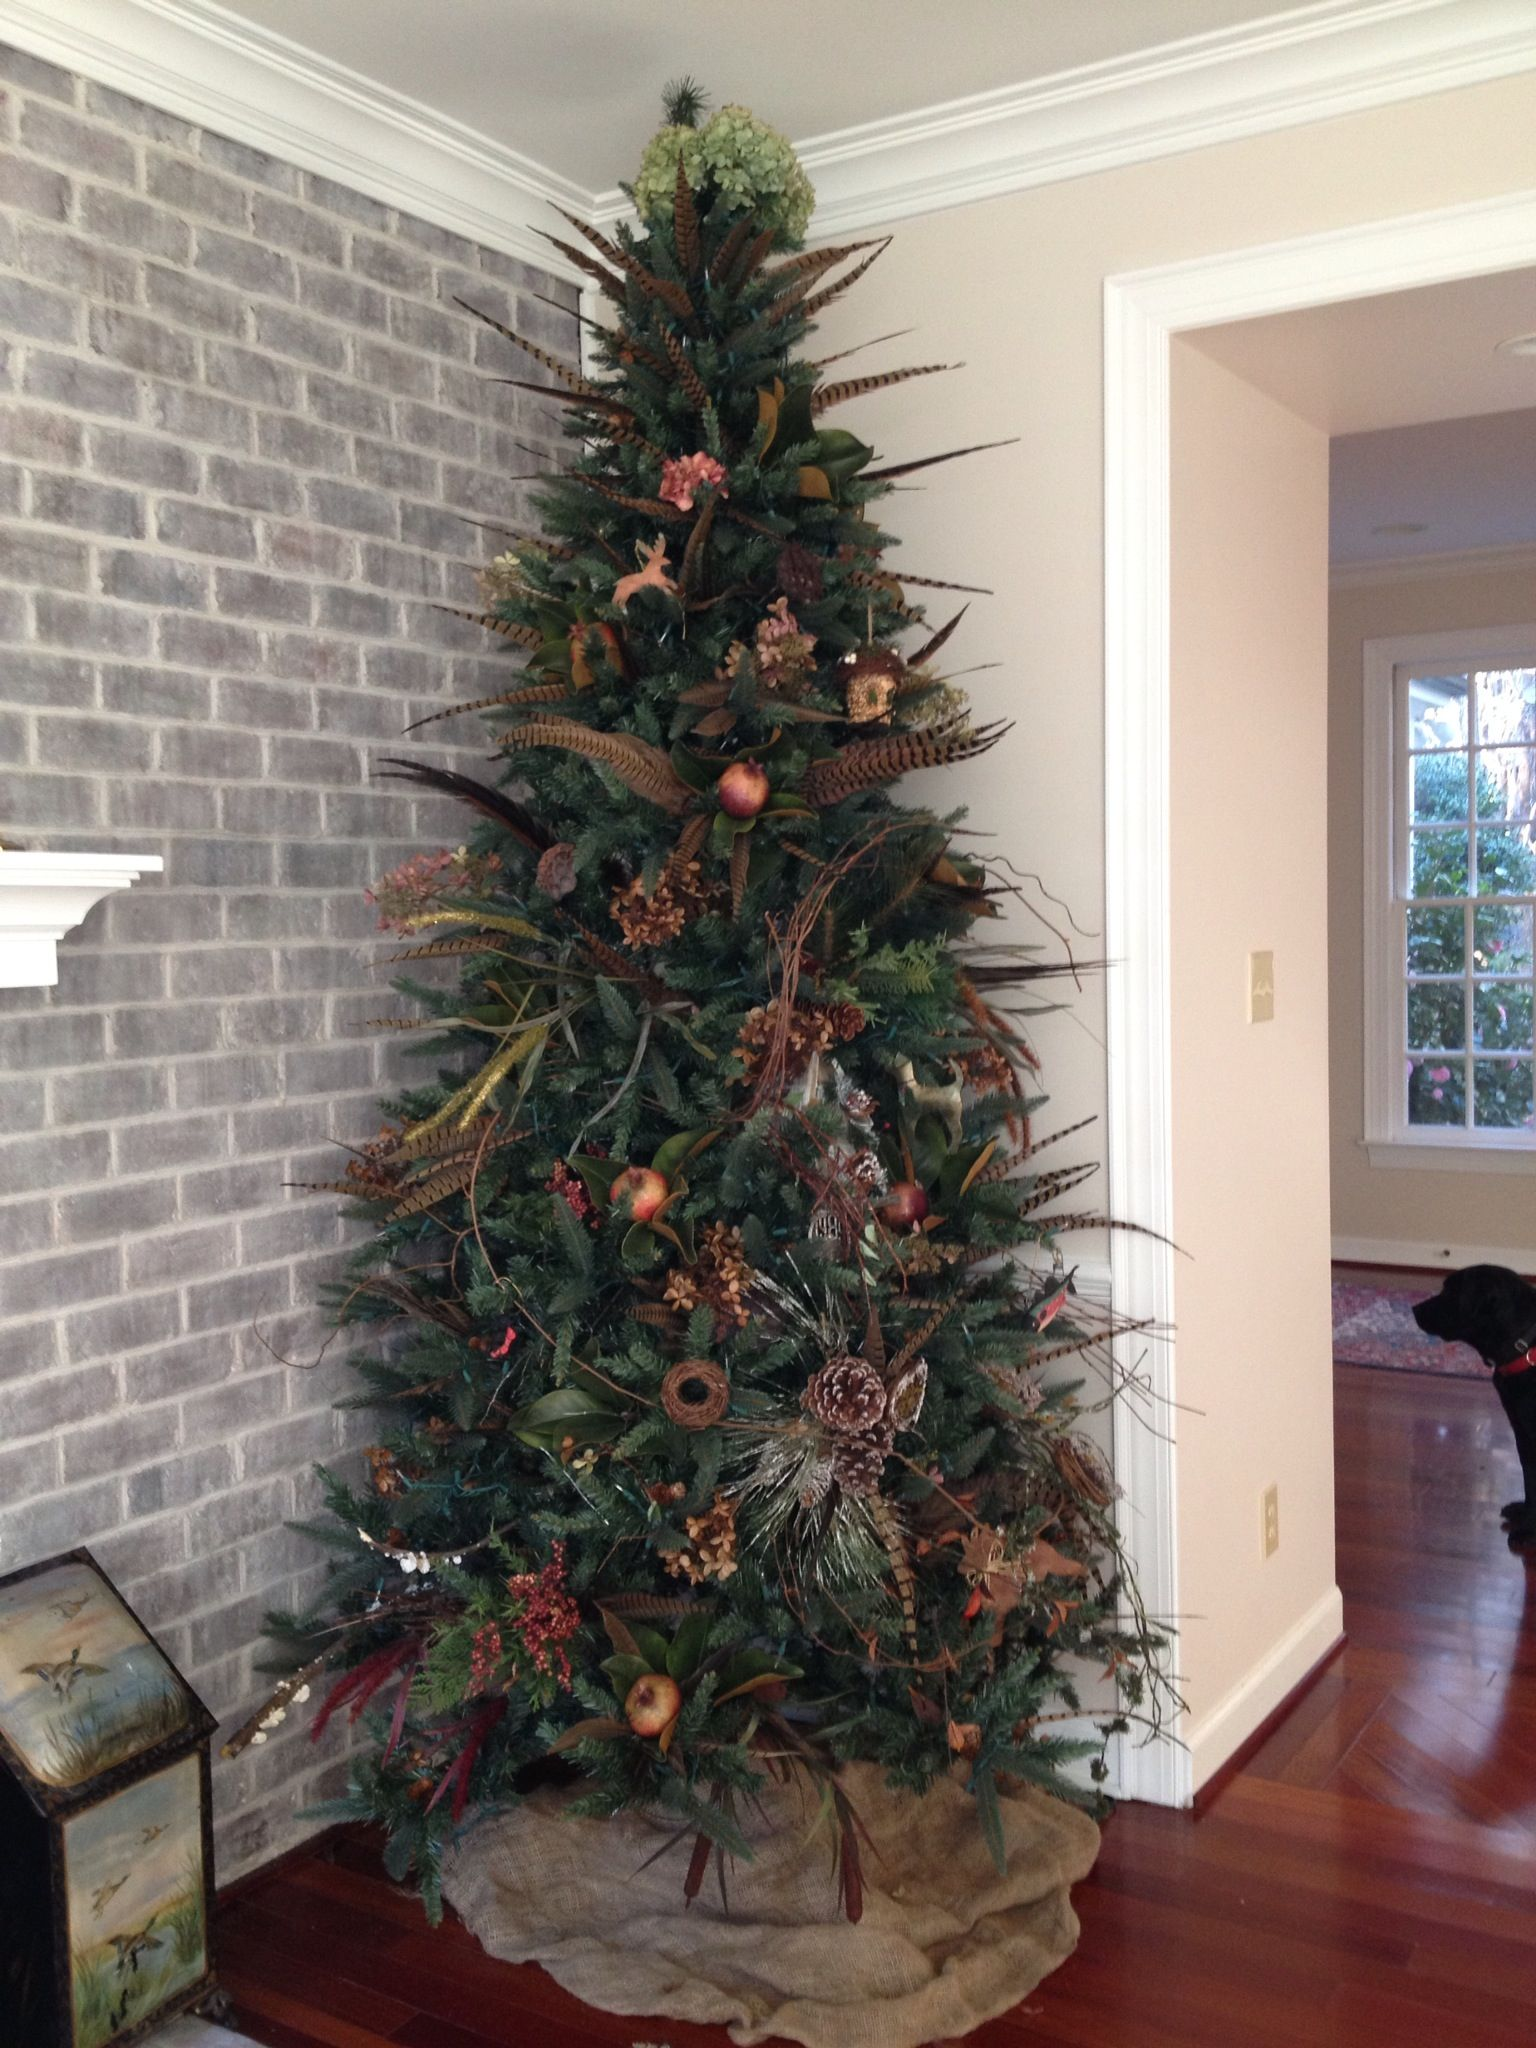 Decorate Your Christmas Tree With Pheasant Feathers From Your Recent South Dakota H Hunting Christmas Decorations Christmas Tree Feathers Christmas Tree Themes